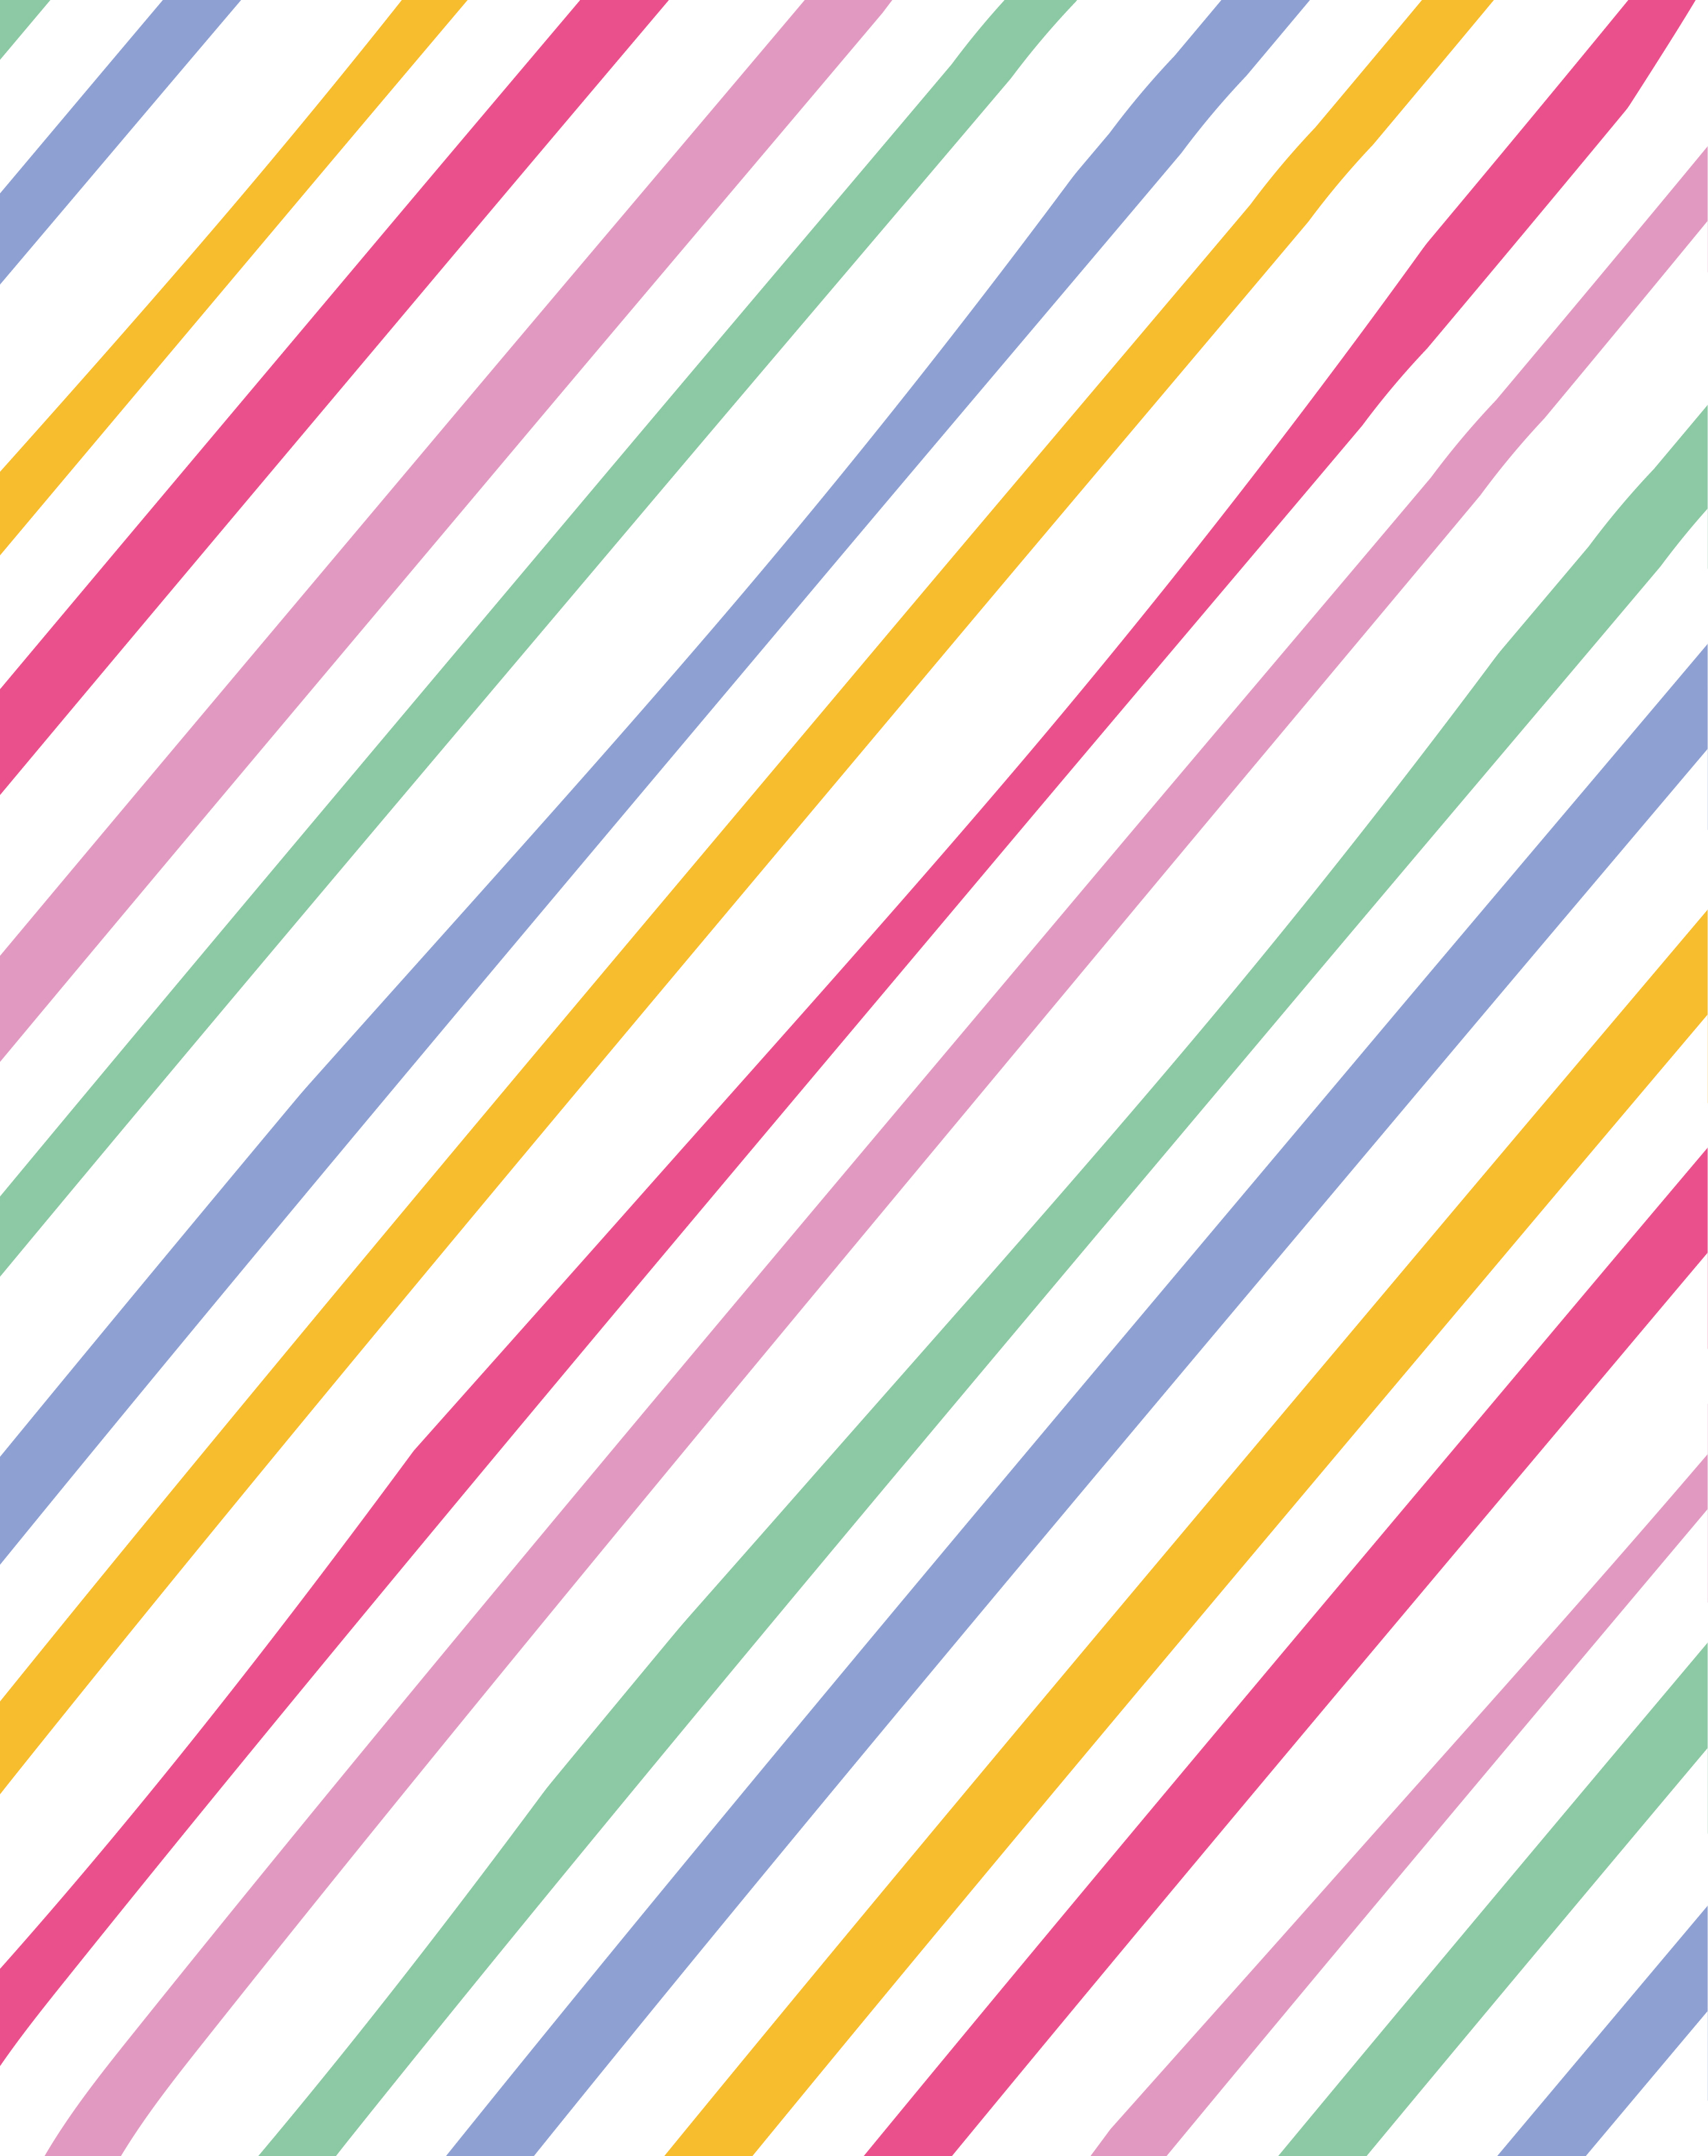 stripes pattern_Nikki Miles-01.jpg